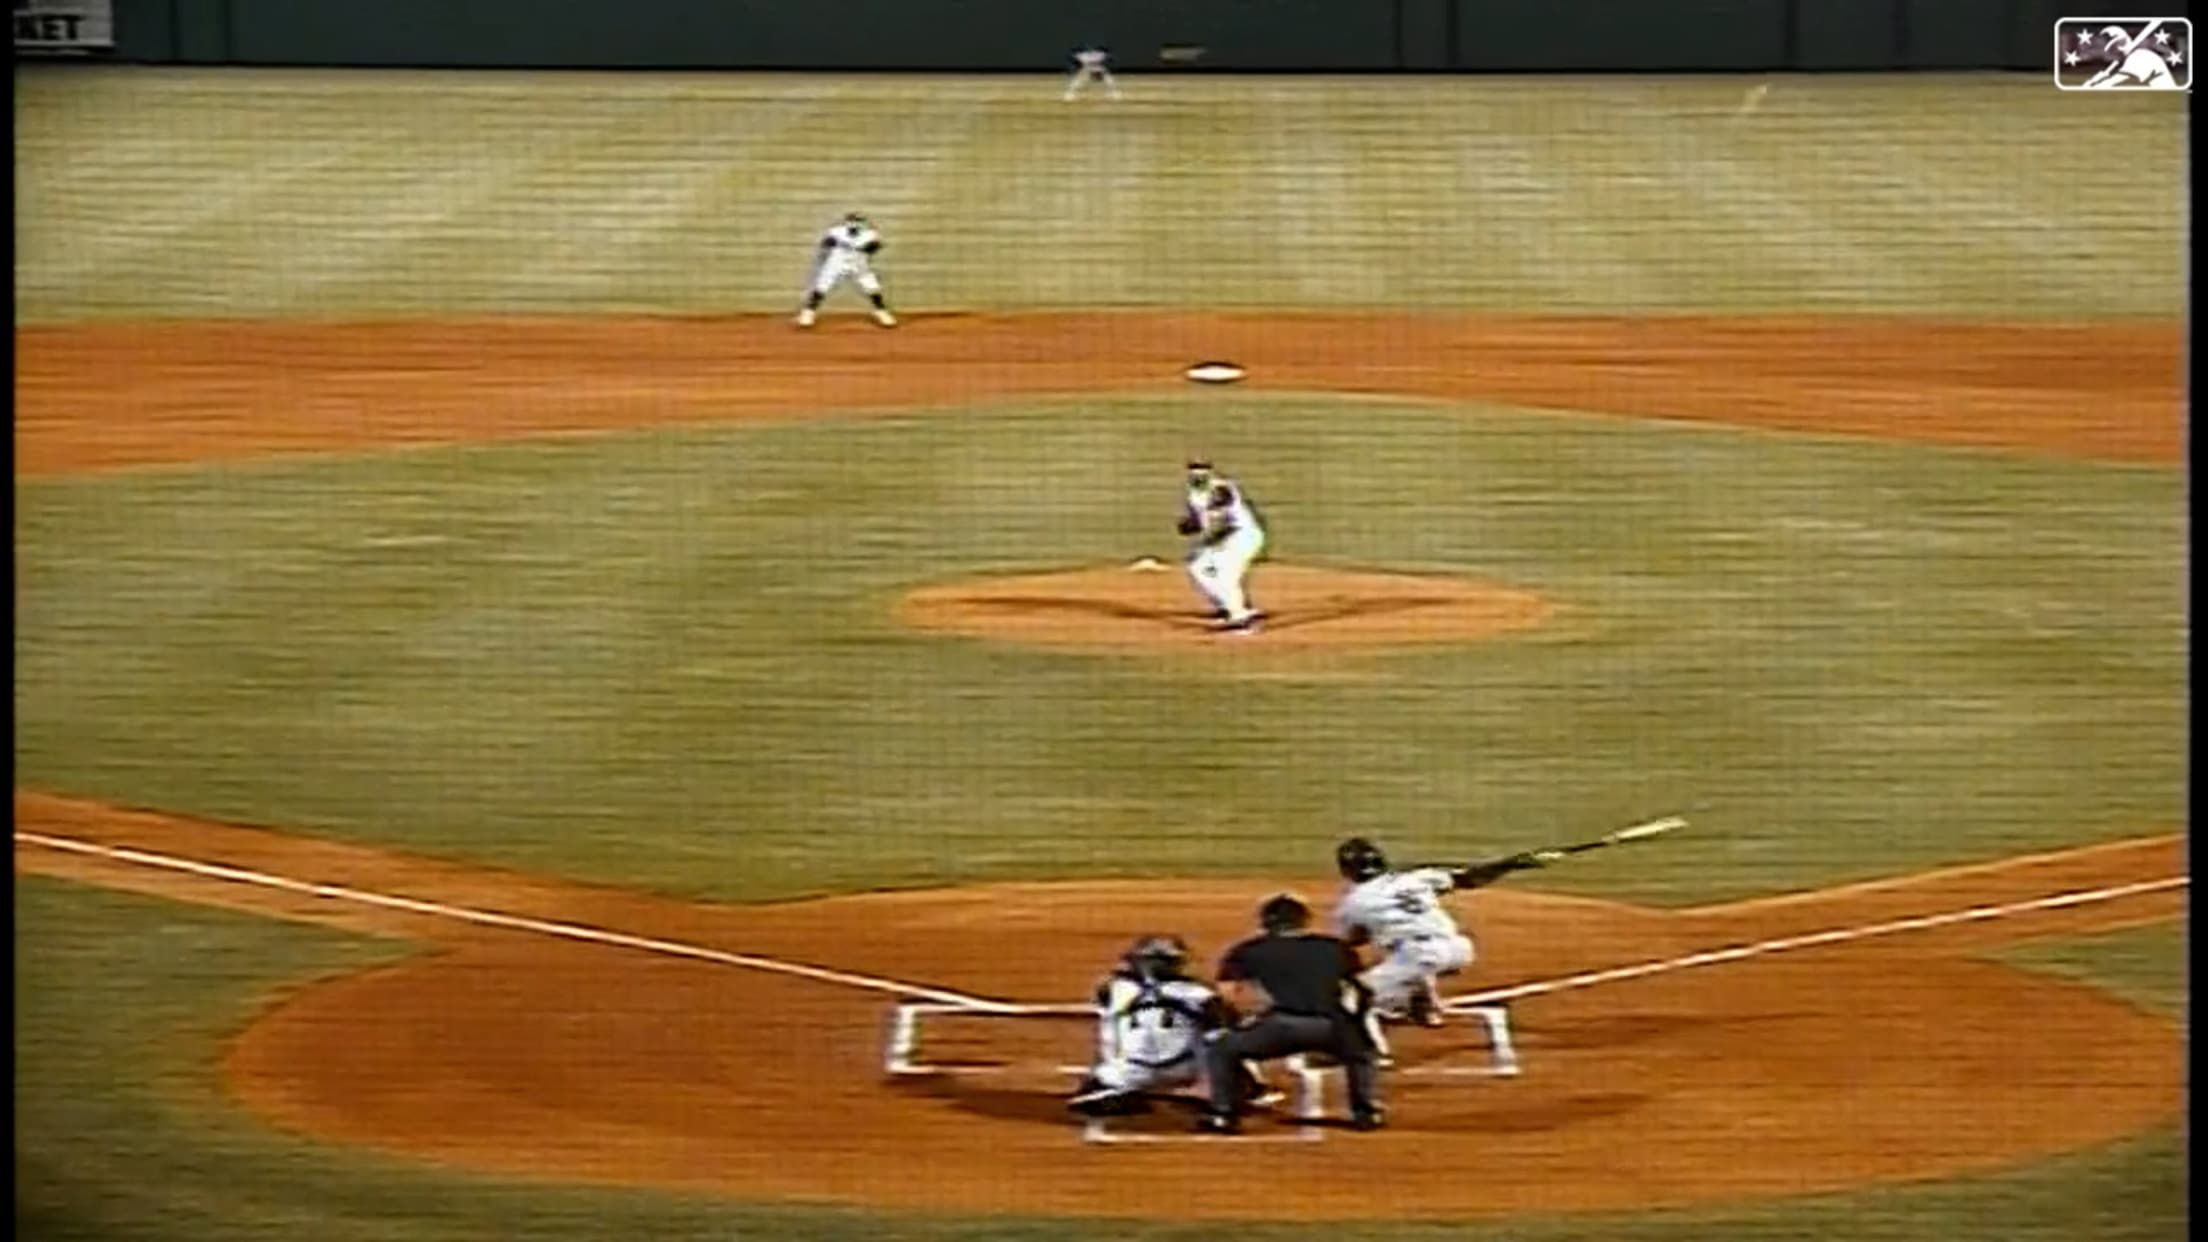 Melendez hits another home run